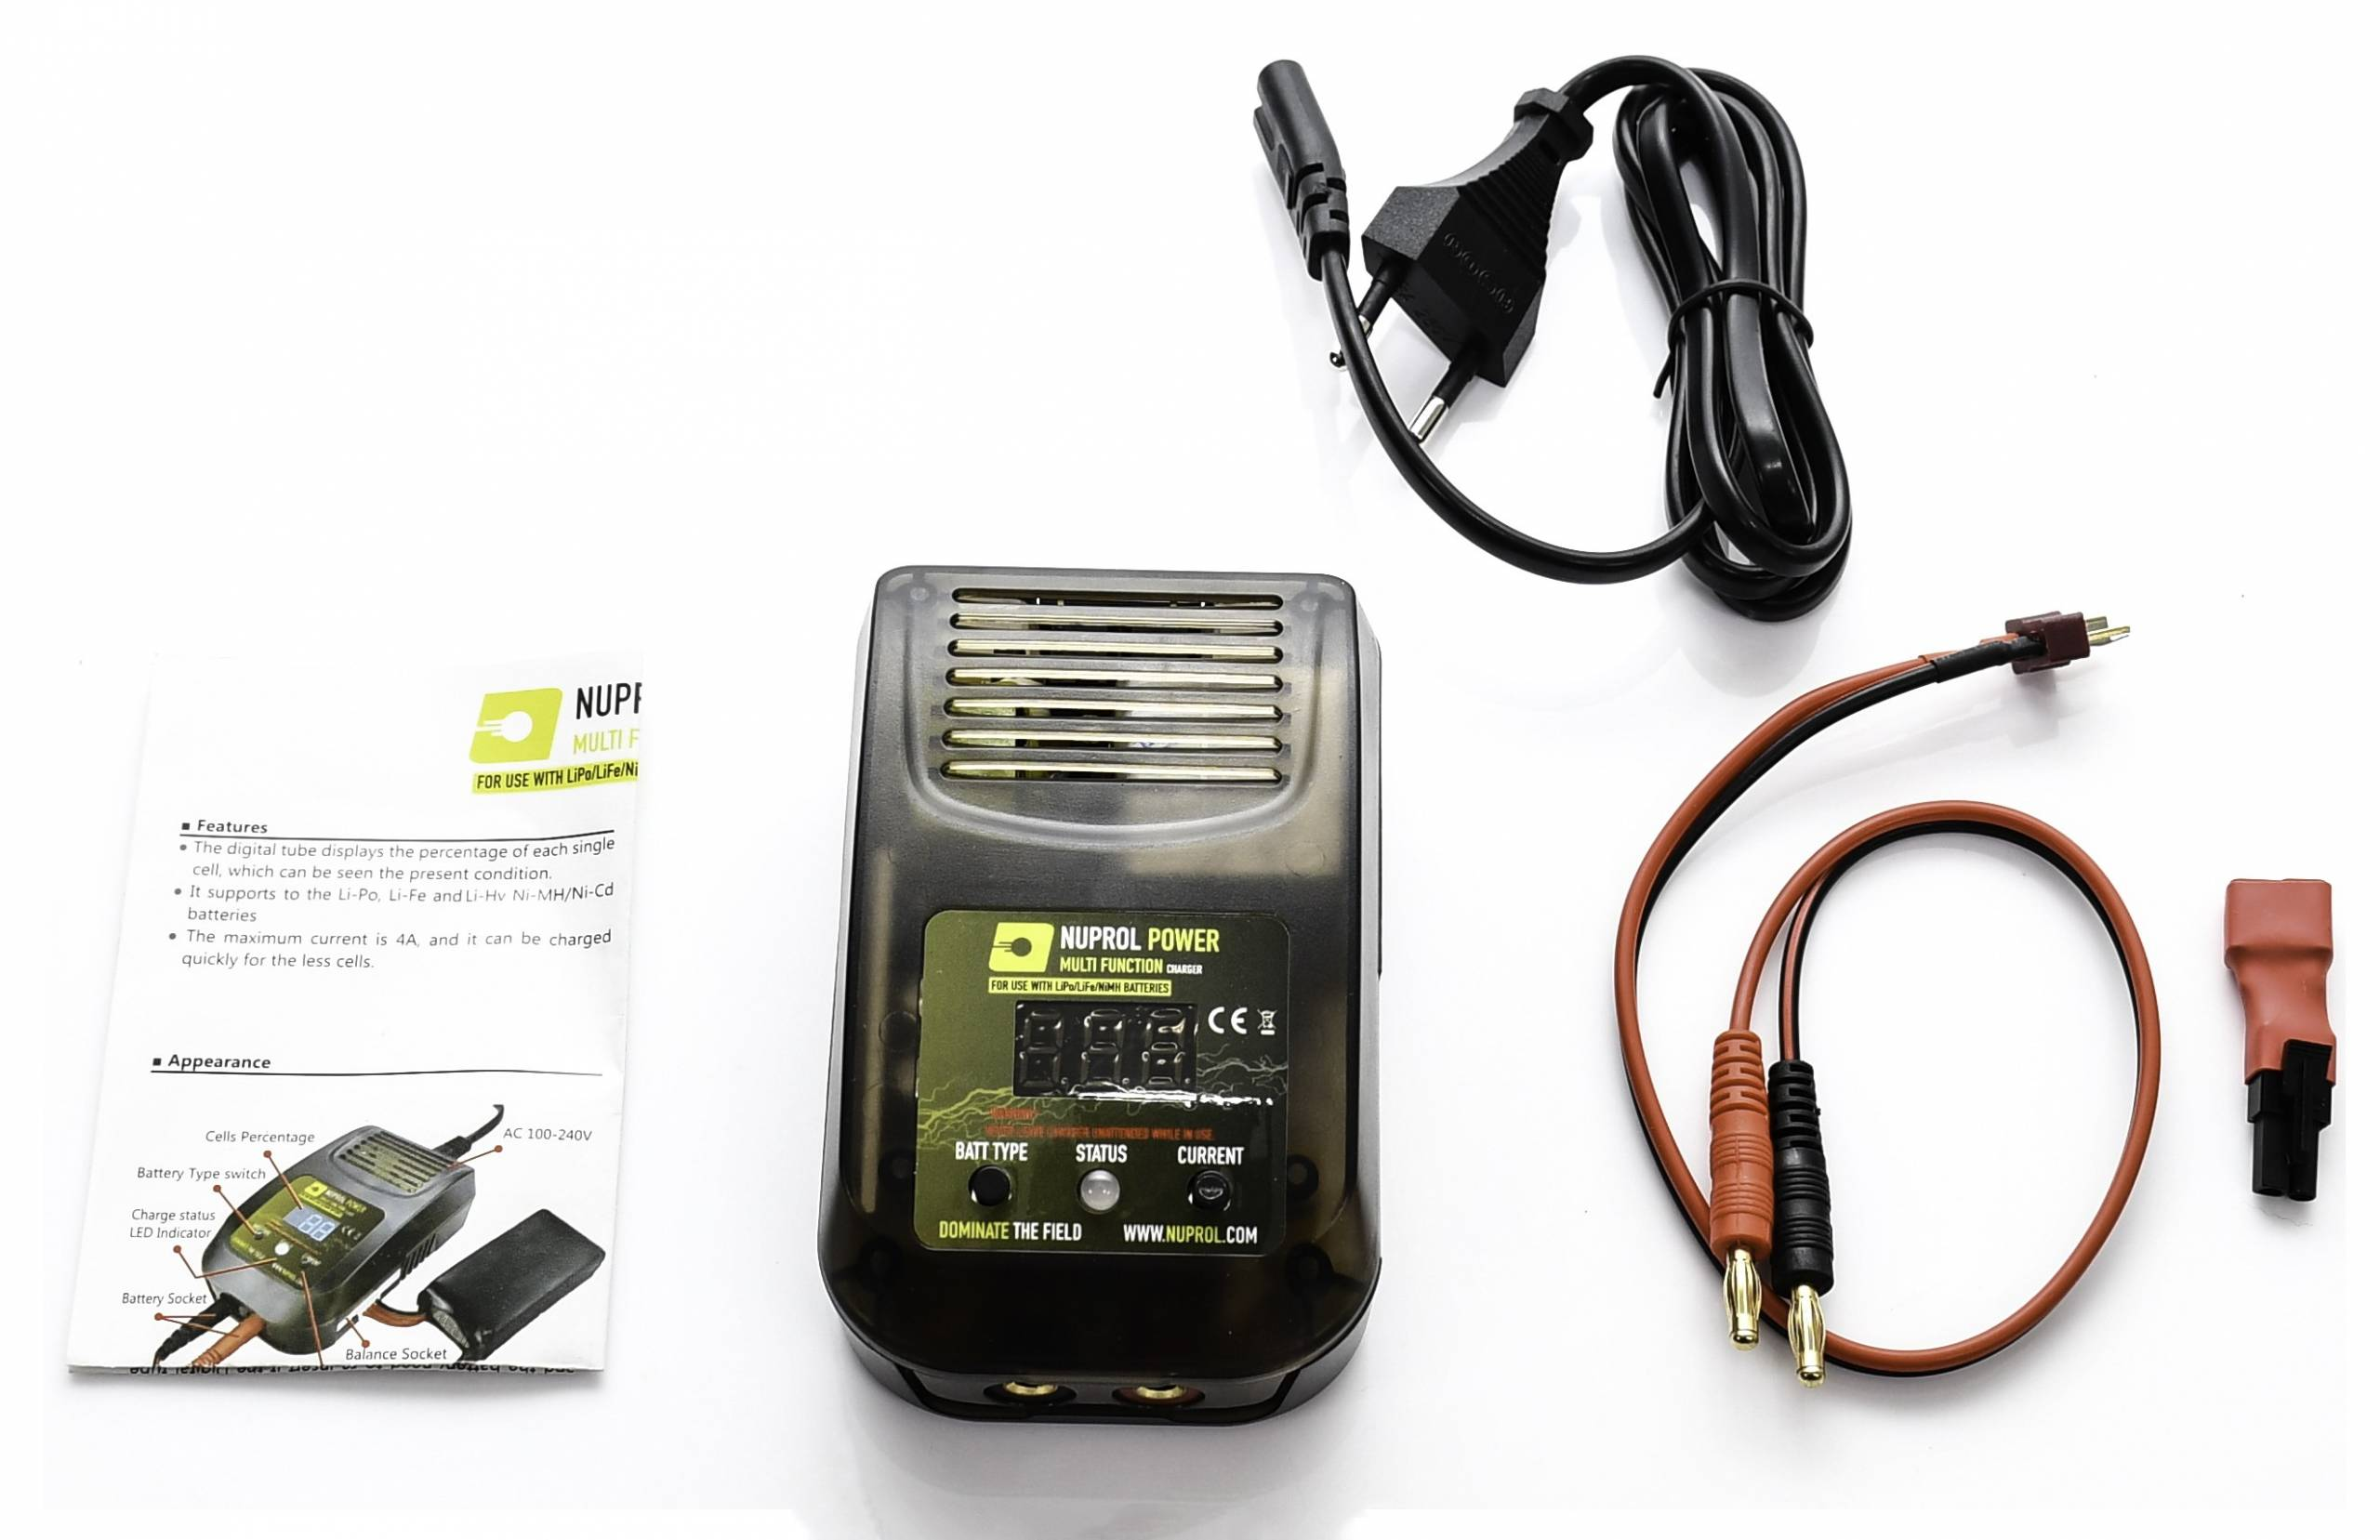 NUPROL MULTI FUNCTION CHARGER product image